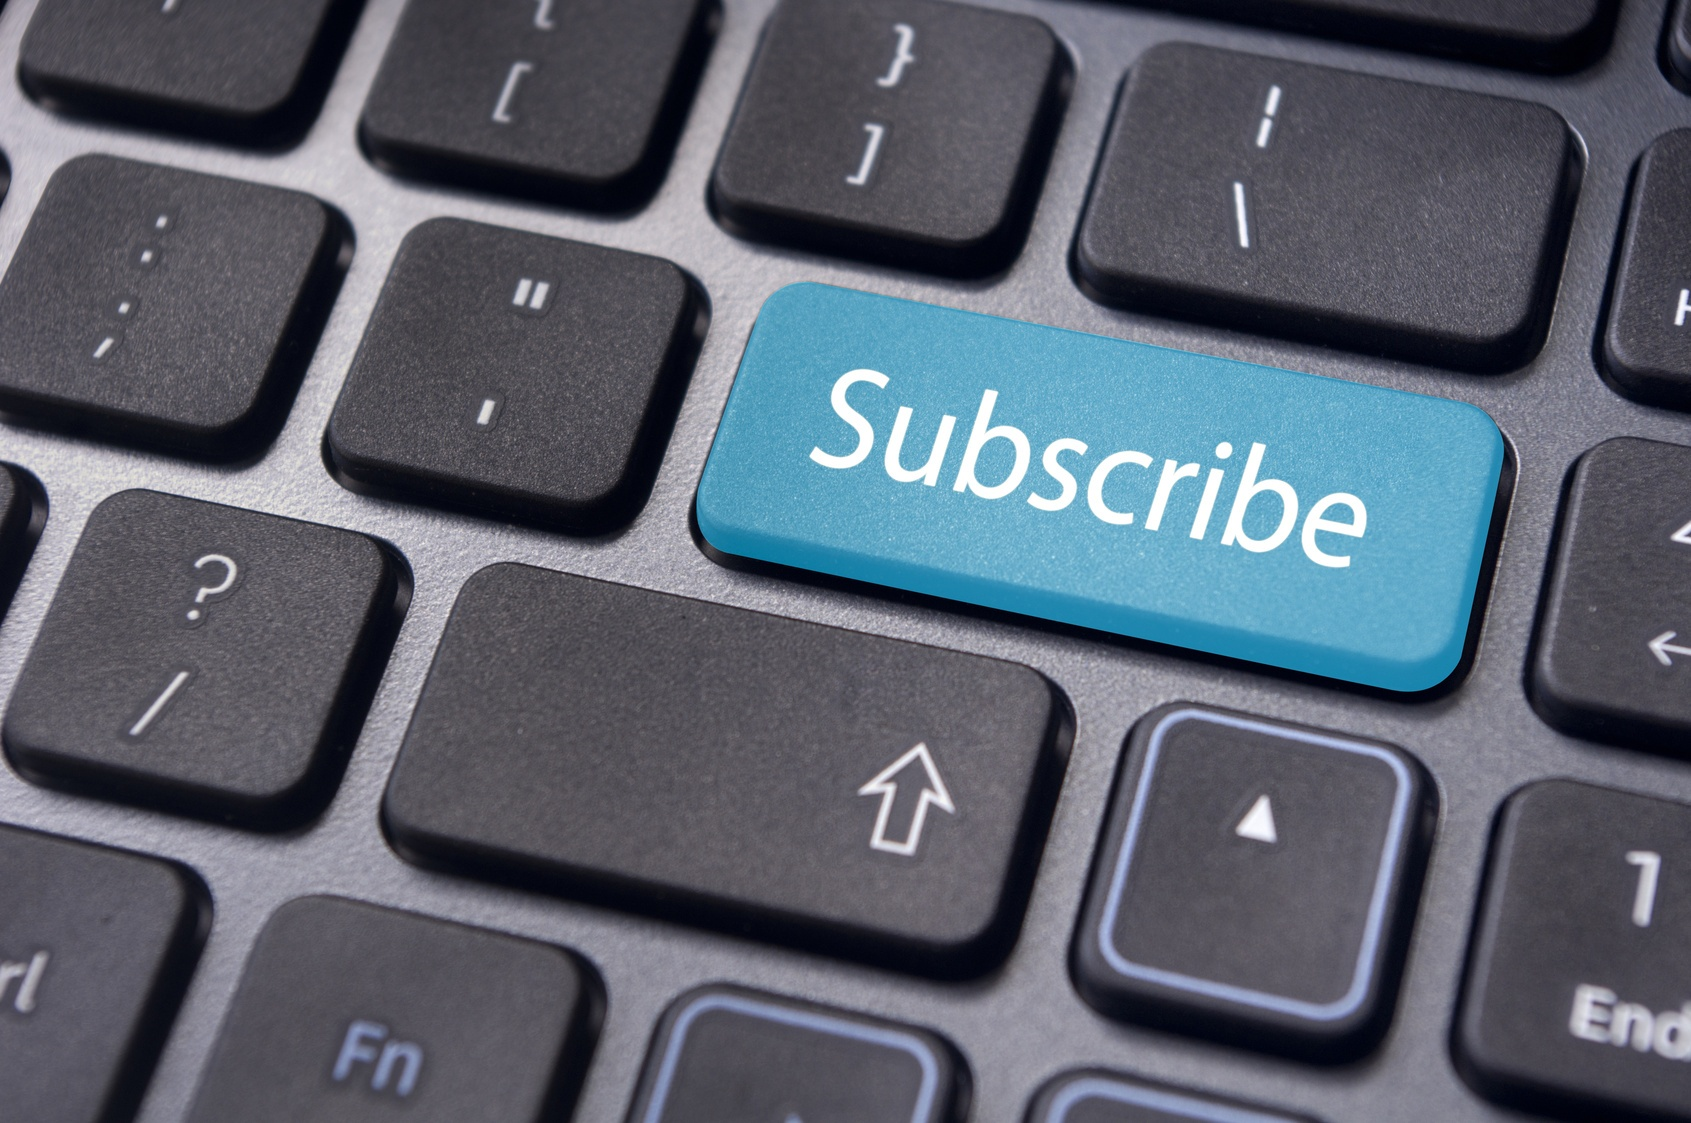 With a great blog and an easy subscription process, growing your list of subscribers is easy and effective.